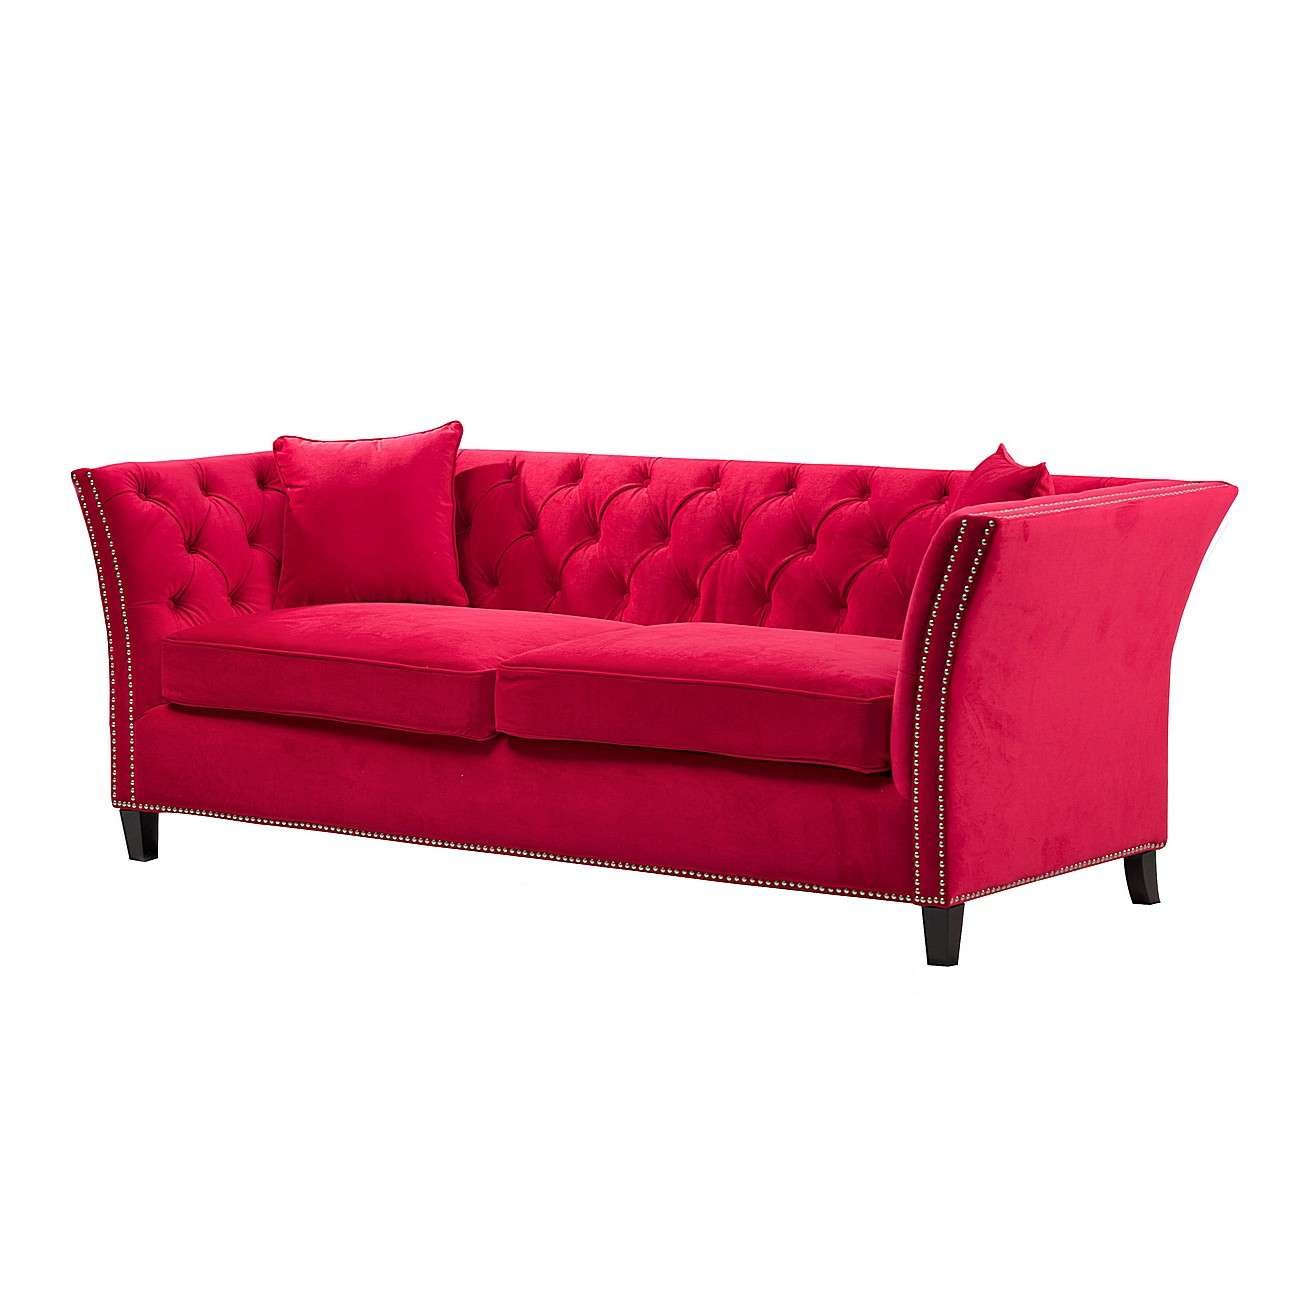 Sofa chesterfield modern velvet raspberry red 3 os for Chesterfield modern einrichten